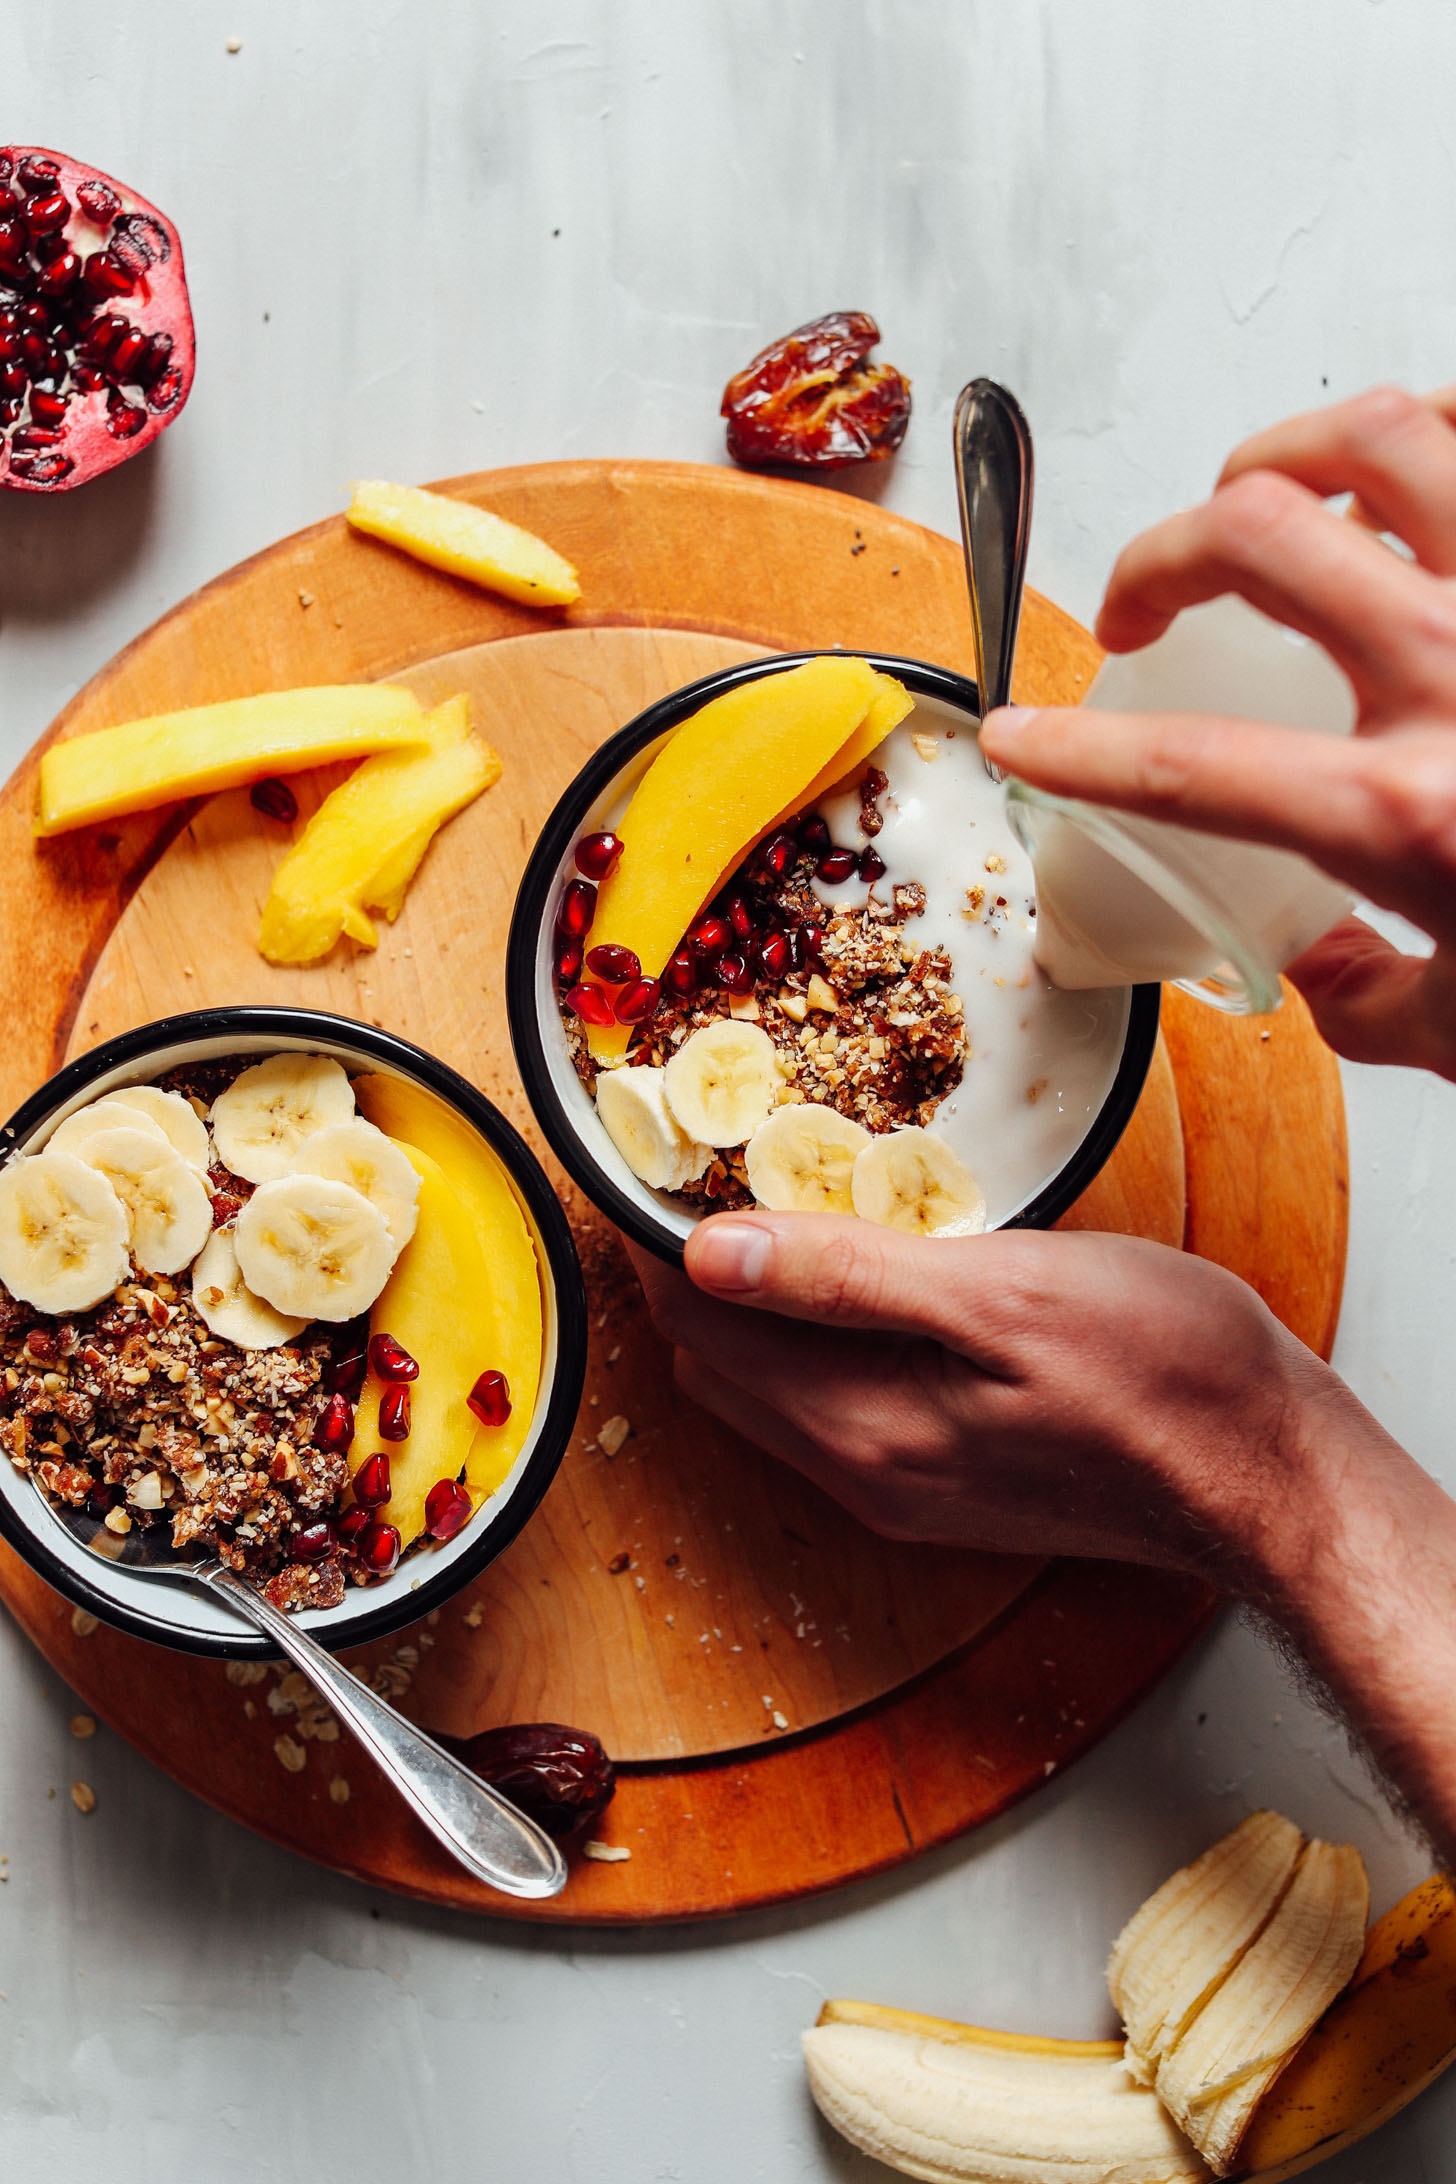 Pouring coconut milk into a bowl of gluten-free vegan granola with fresh fruit